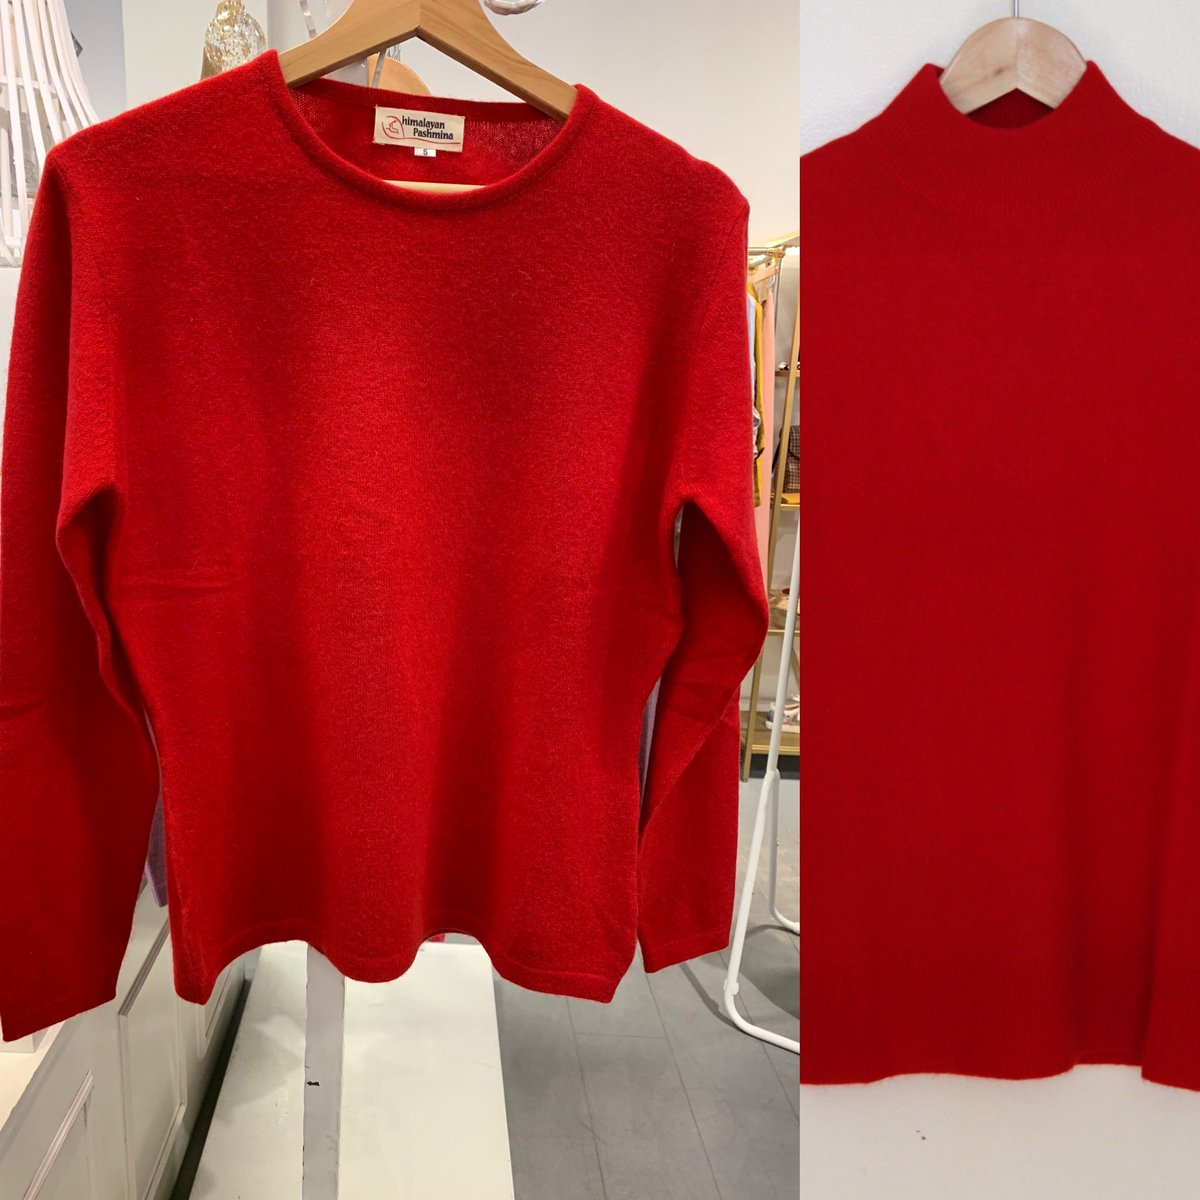 Luxurious hand knitted cashmere jumper by local weavers from Nepal- sure to keep you cozy and warm in round neck -polo neck  #gifts #specialgifts #ecofashion #SundayMorning #handmade #cashmere #knitwear #birthdaygifts #fashion #cozyandwarm #sustainable #christmasgifts https://t.co/VG0tIcvRK0